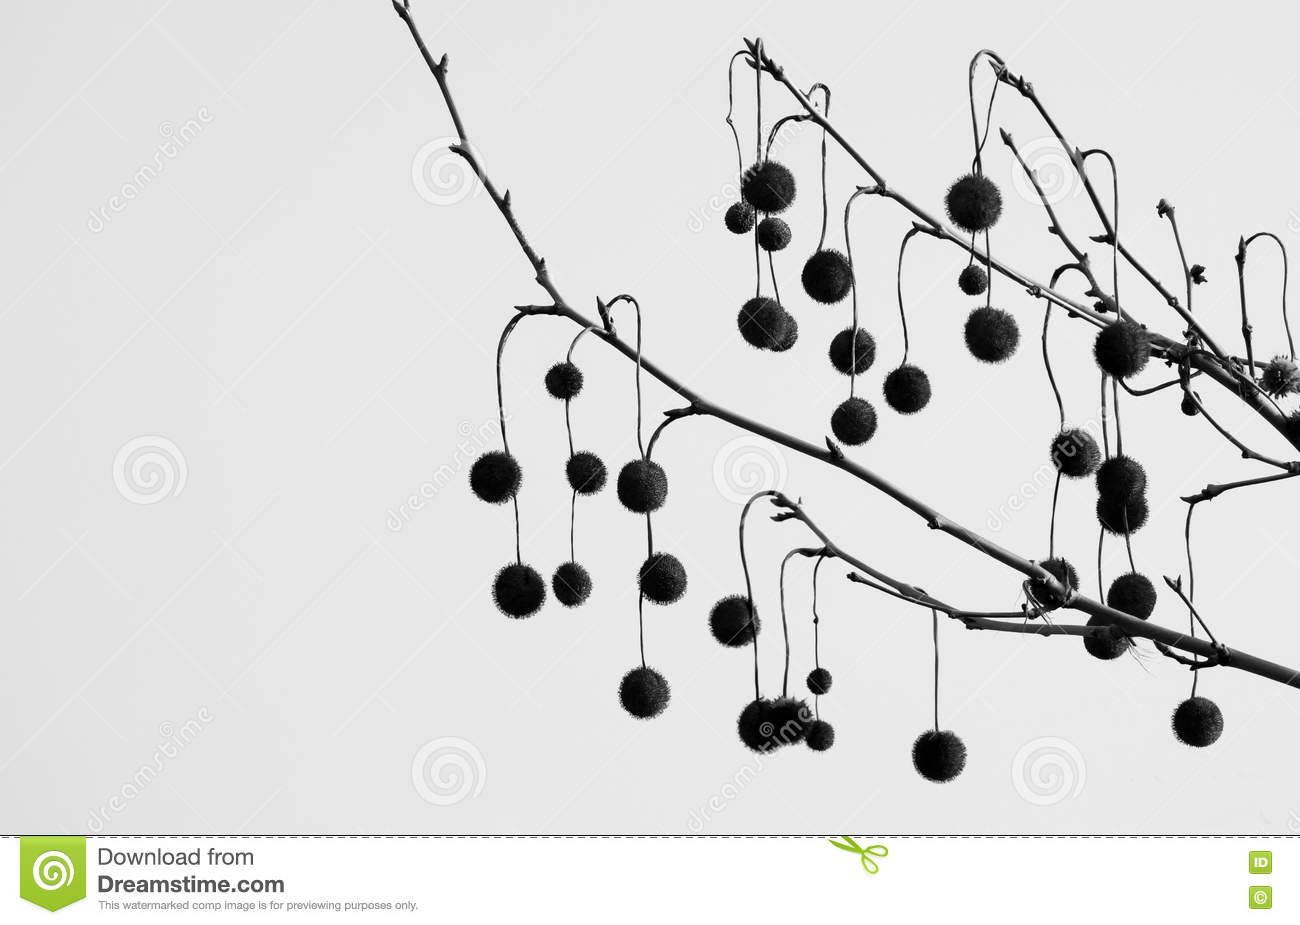 Sycamore balls stock photo  Image of hickory, plant